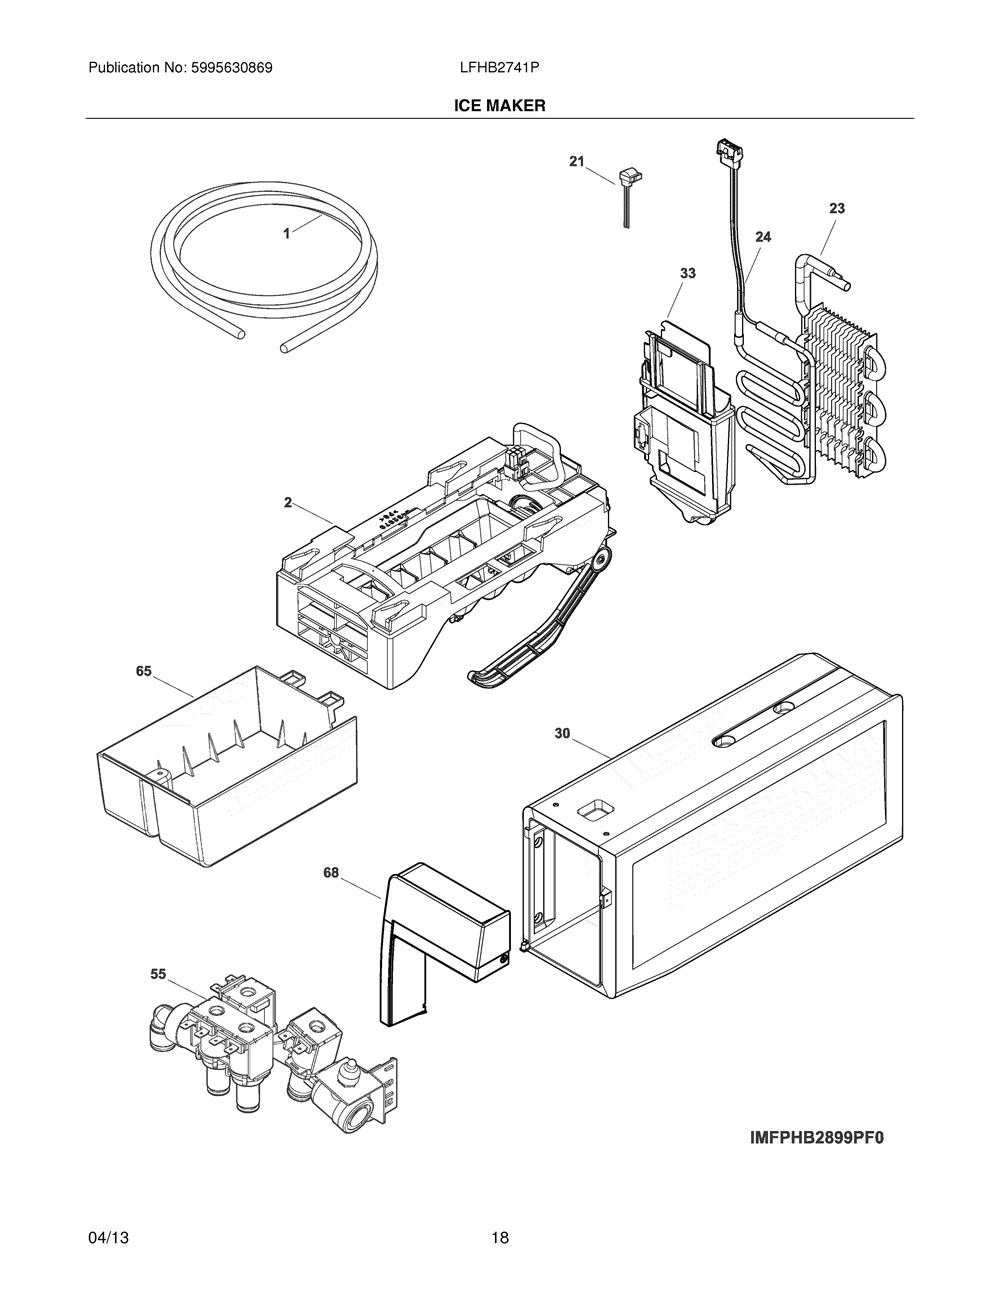 Lfhb2741pf1 frigidaire company appliance parts pooptronica Gallery